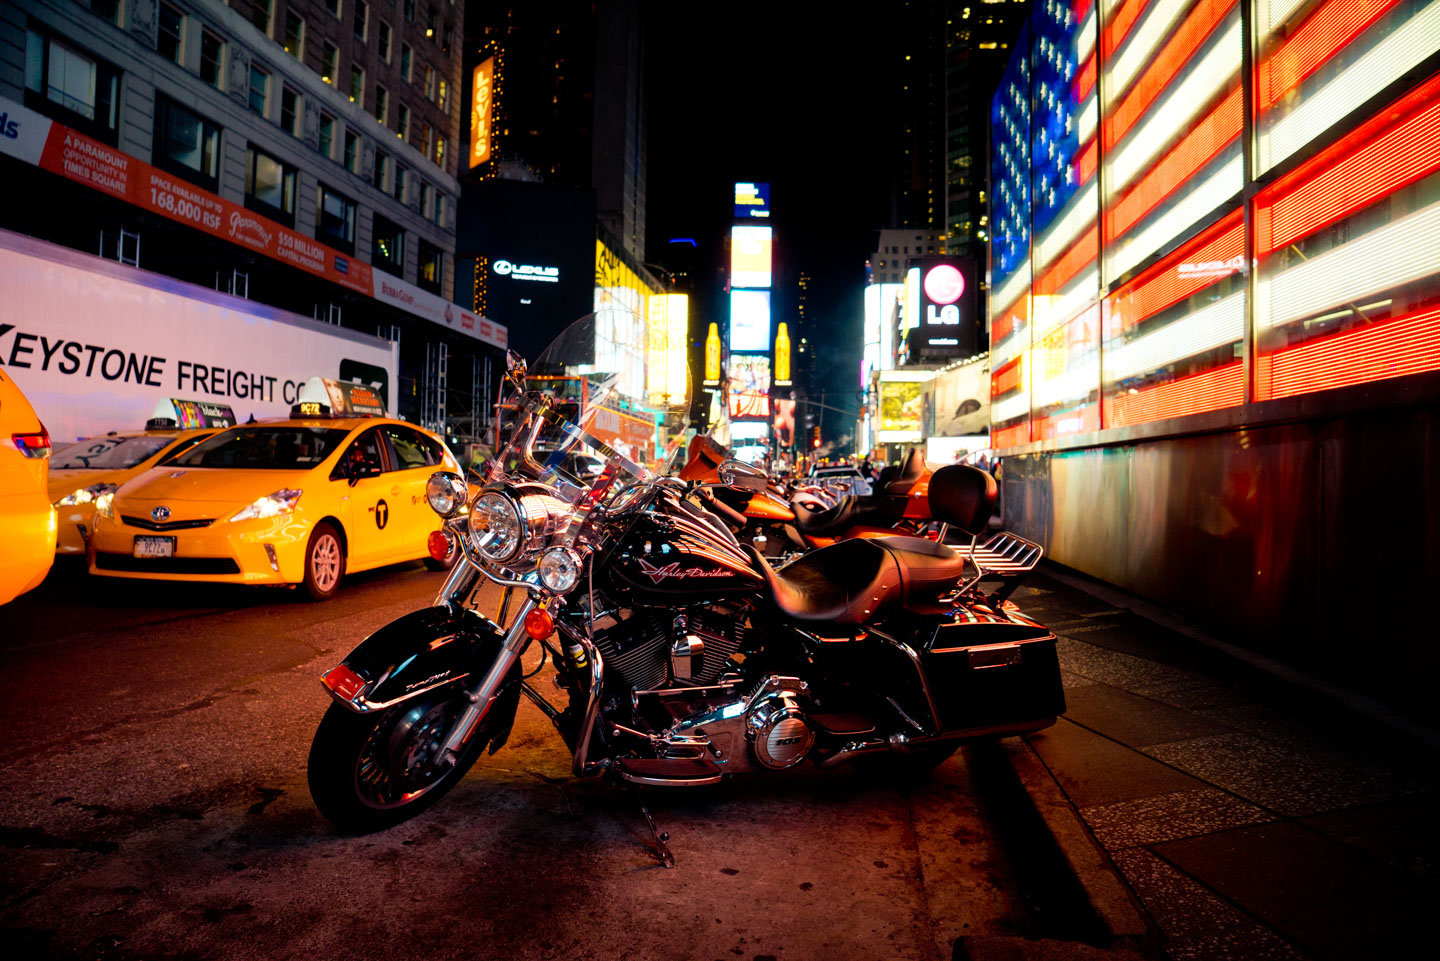 New York Queens Village Motorcycle Rentals Harley